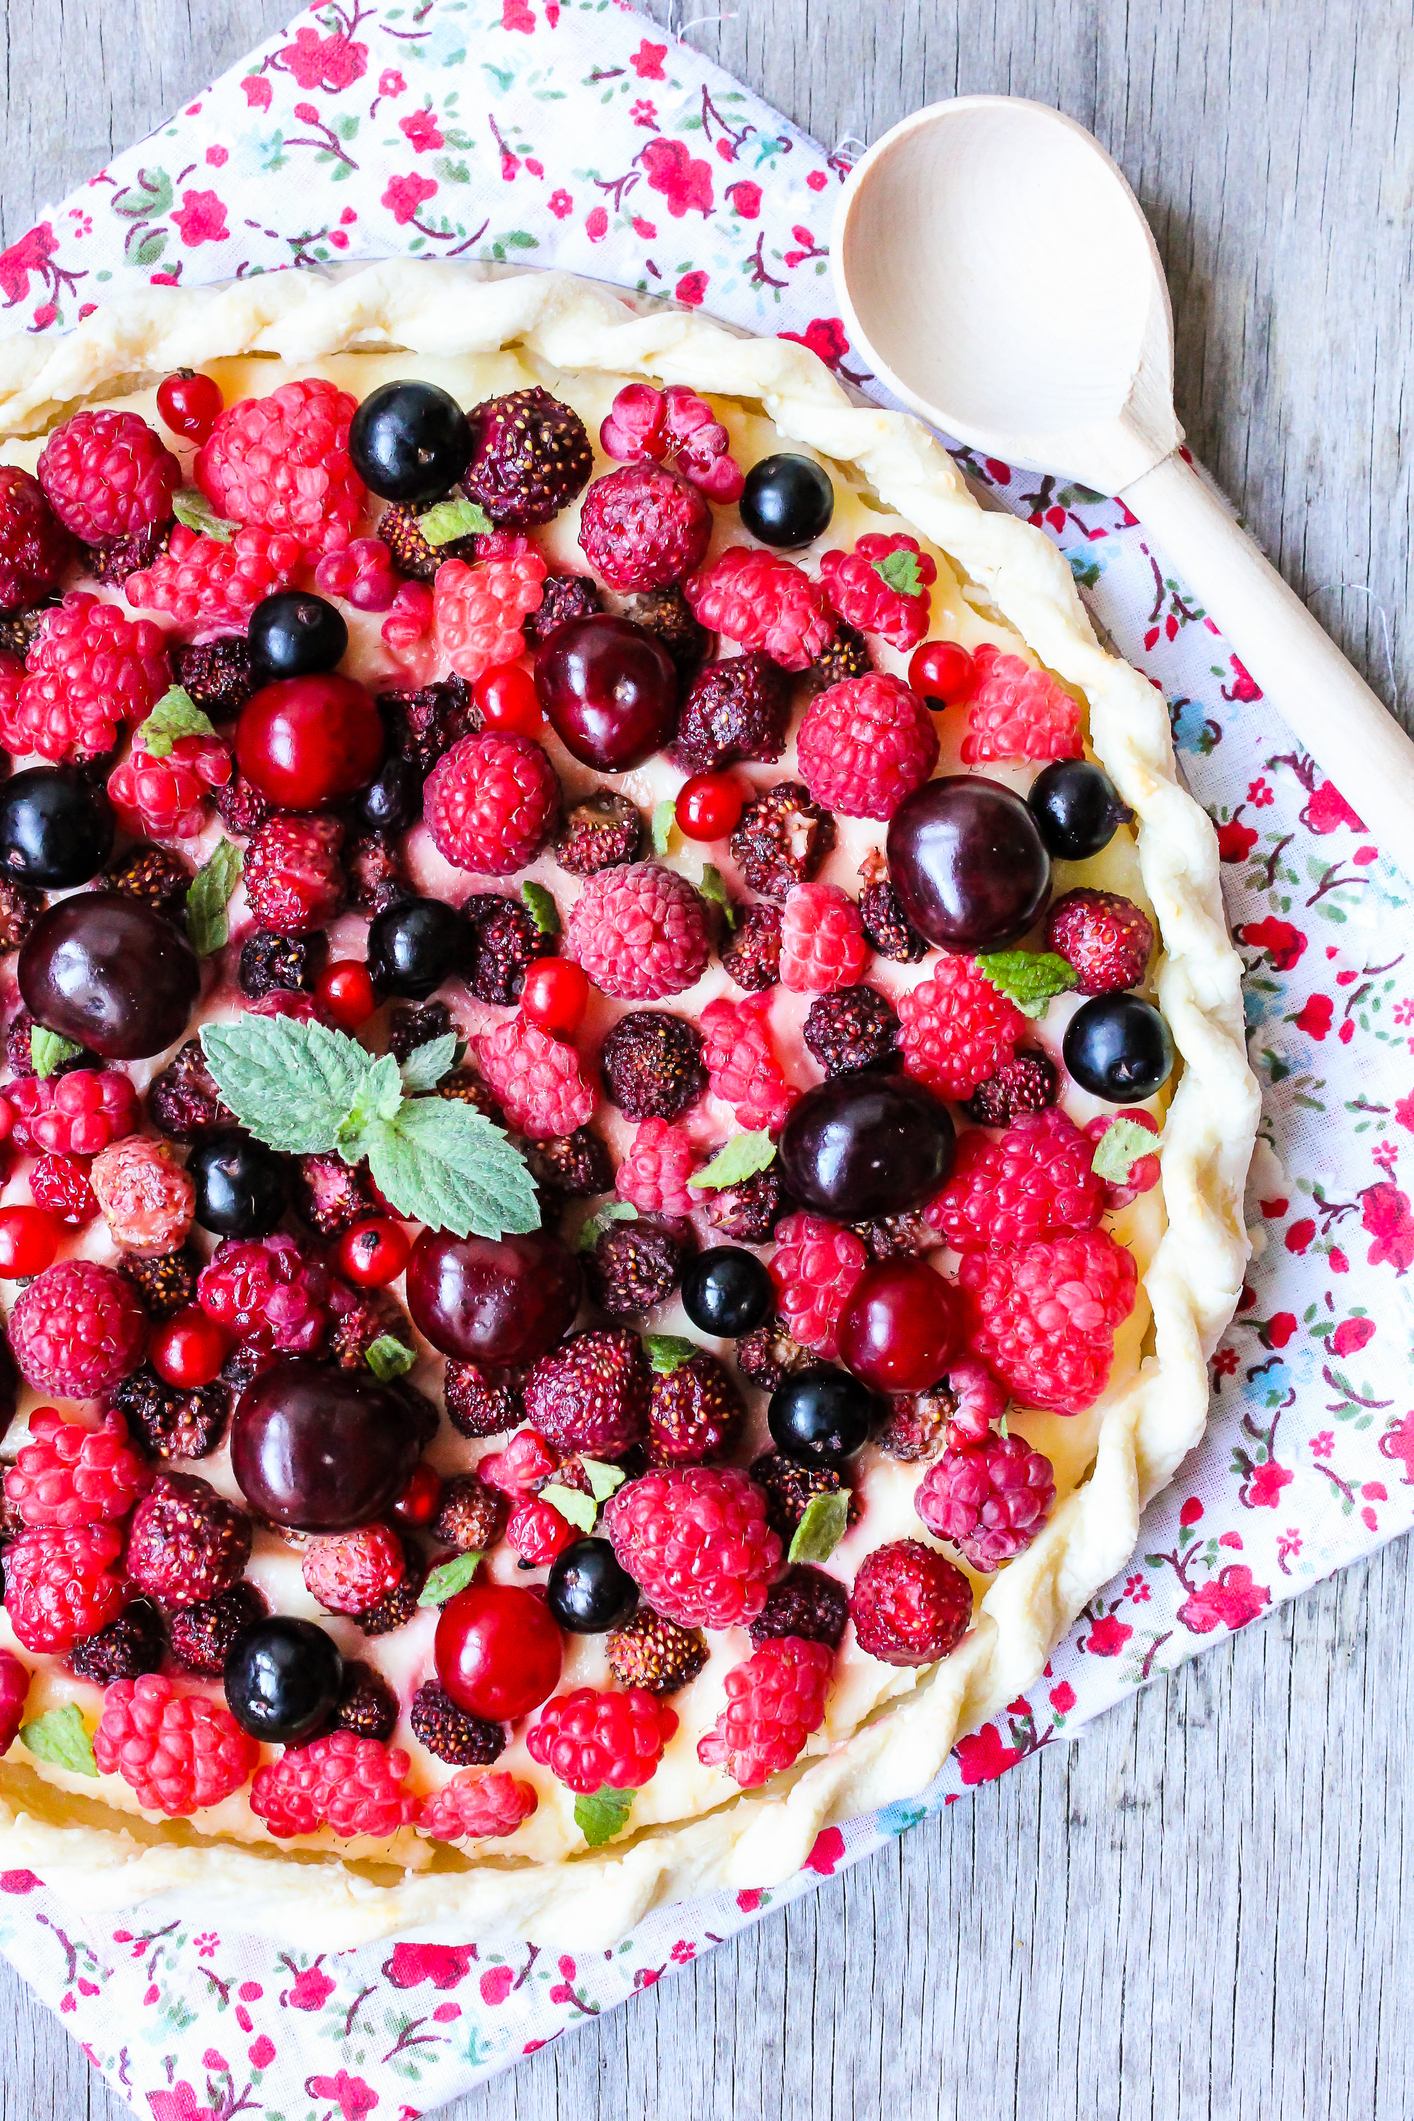 Homemade puff pastry sweet pie with fresh cherry, raspberry, black currant and strawberry with cream cheese decorated with fresh mint on a wooden table, selective focus